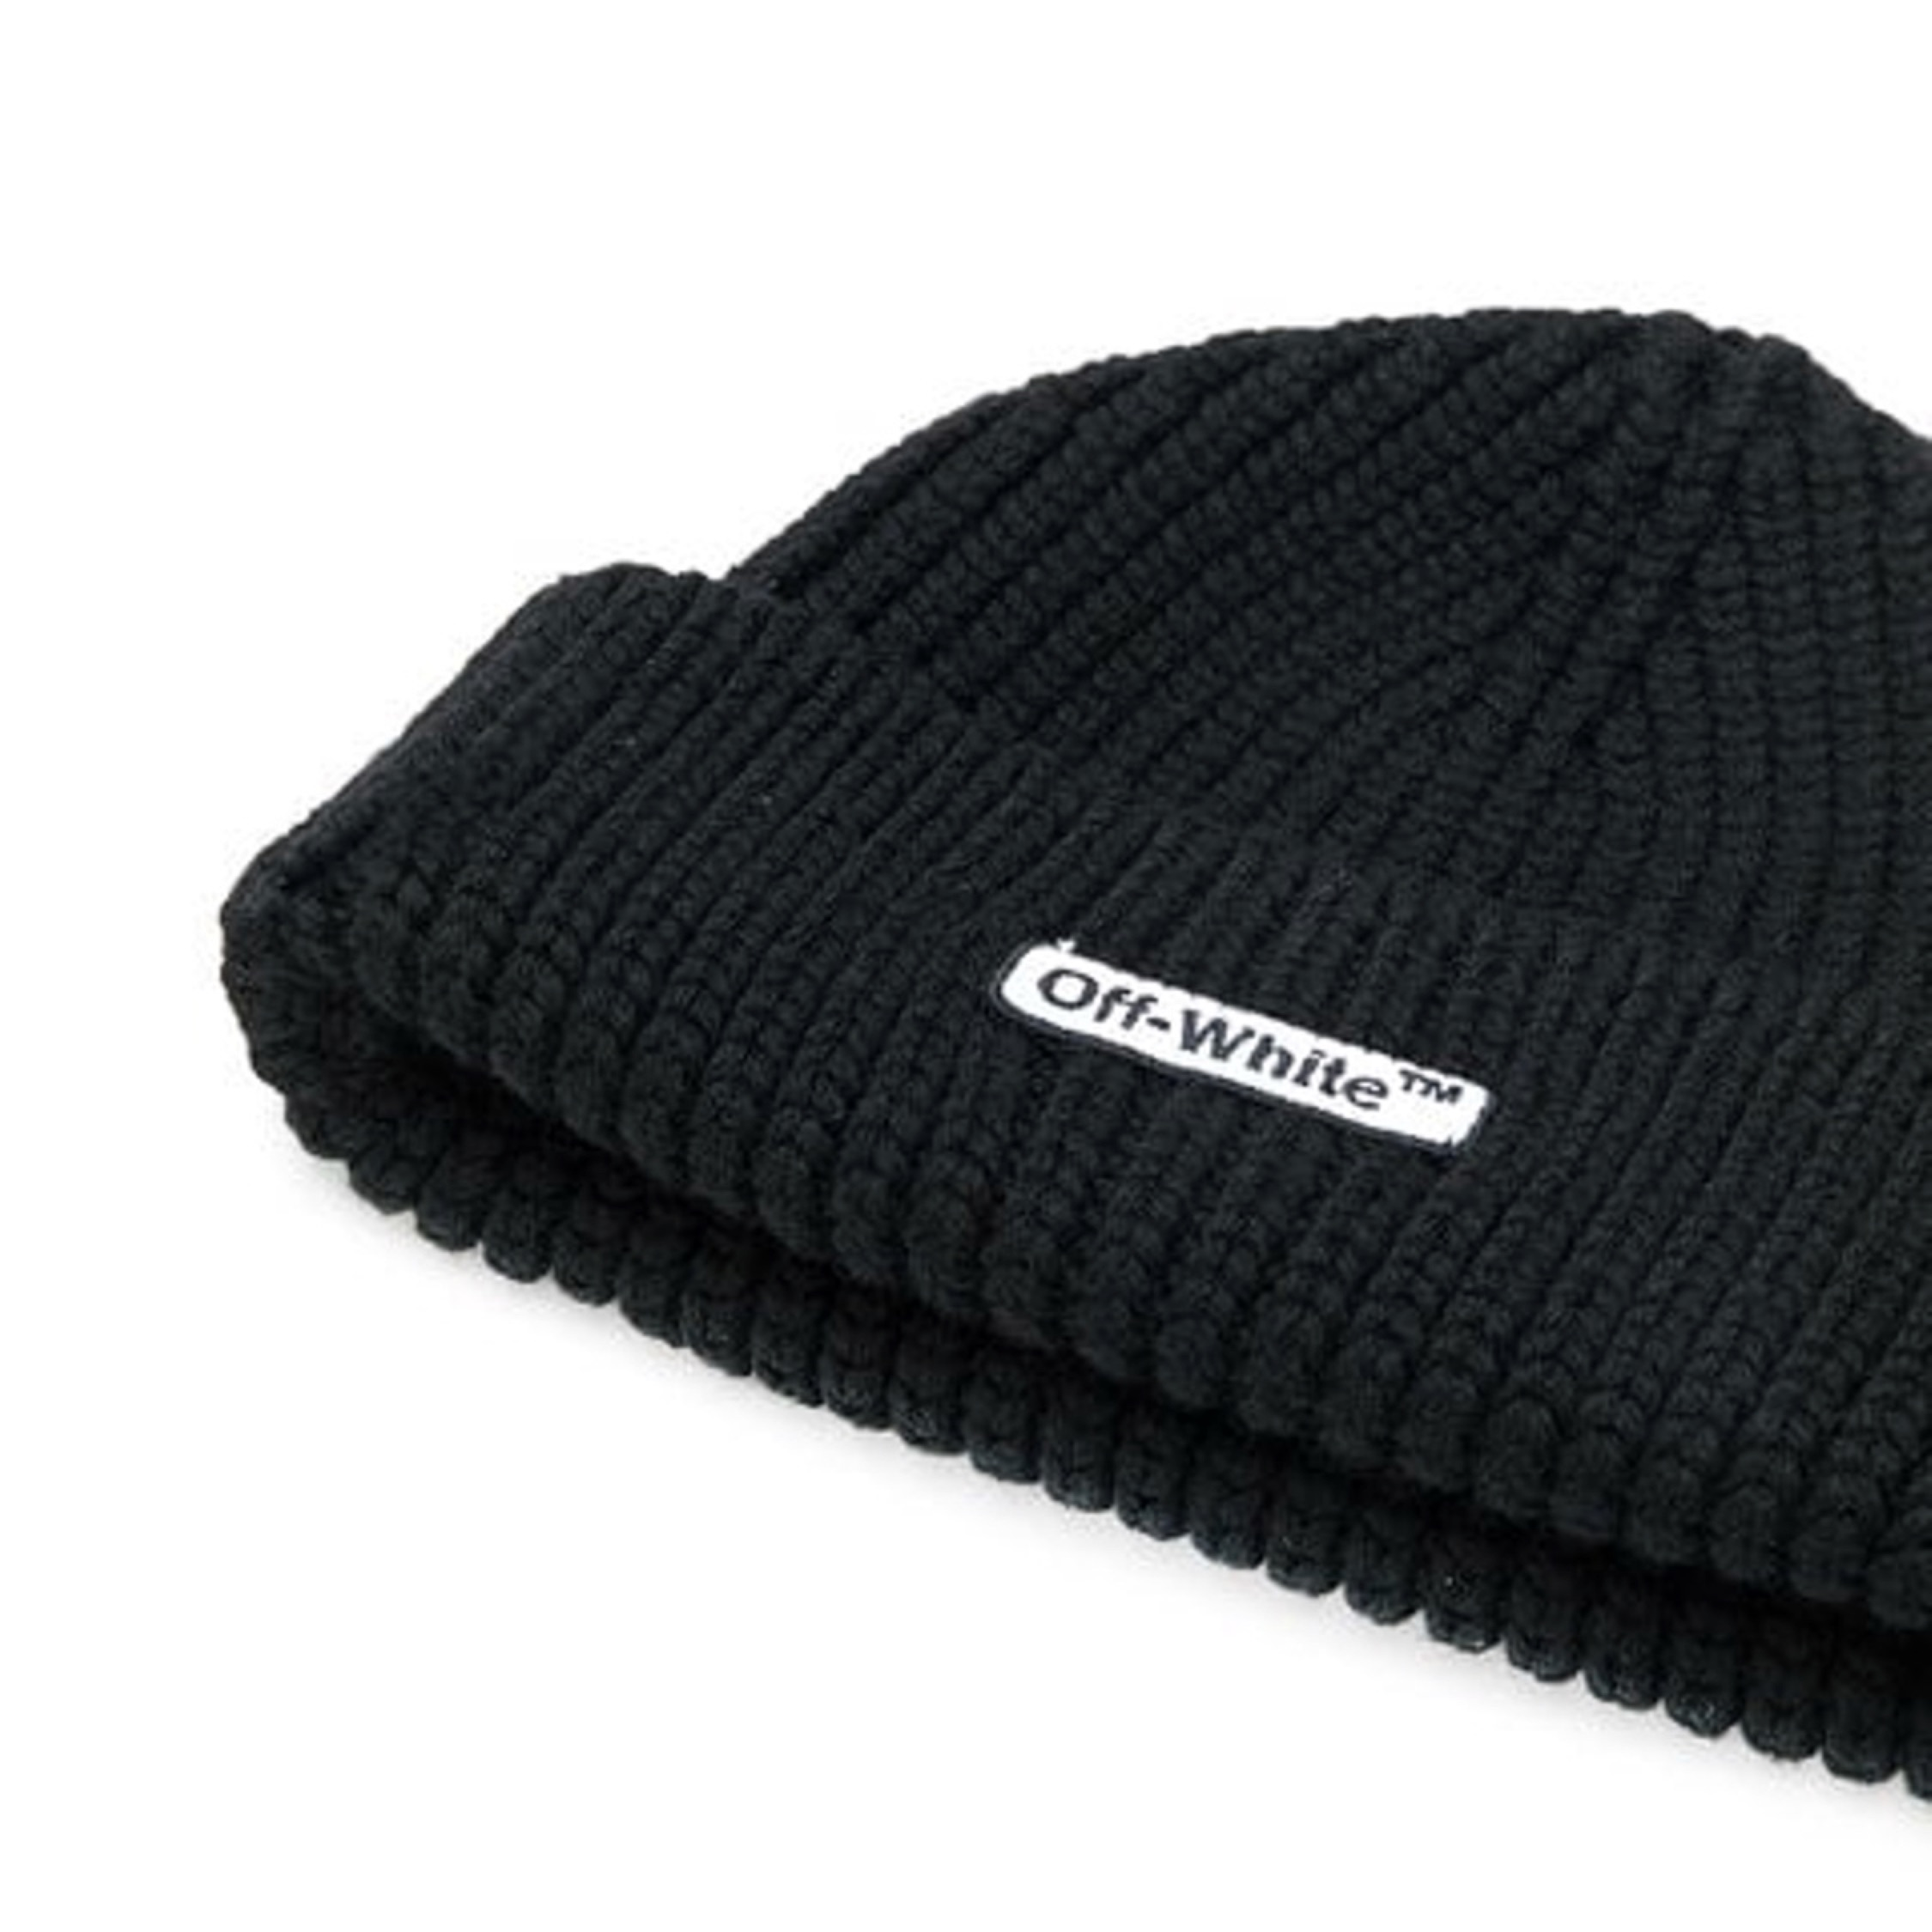 31e80da55 Off White Ribbed Logo Beanie New Black